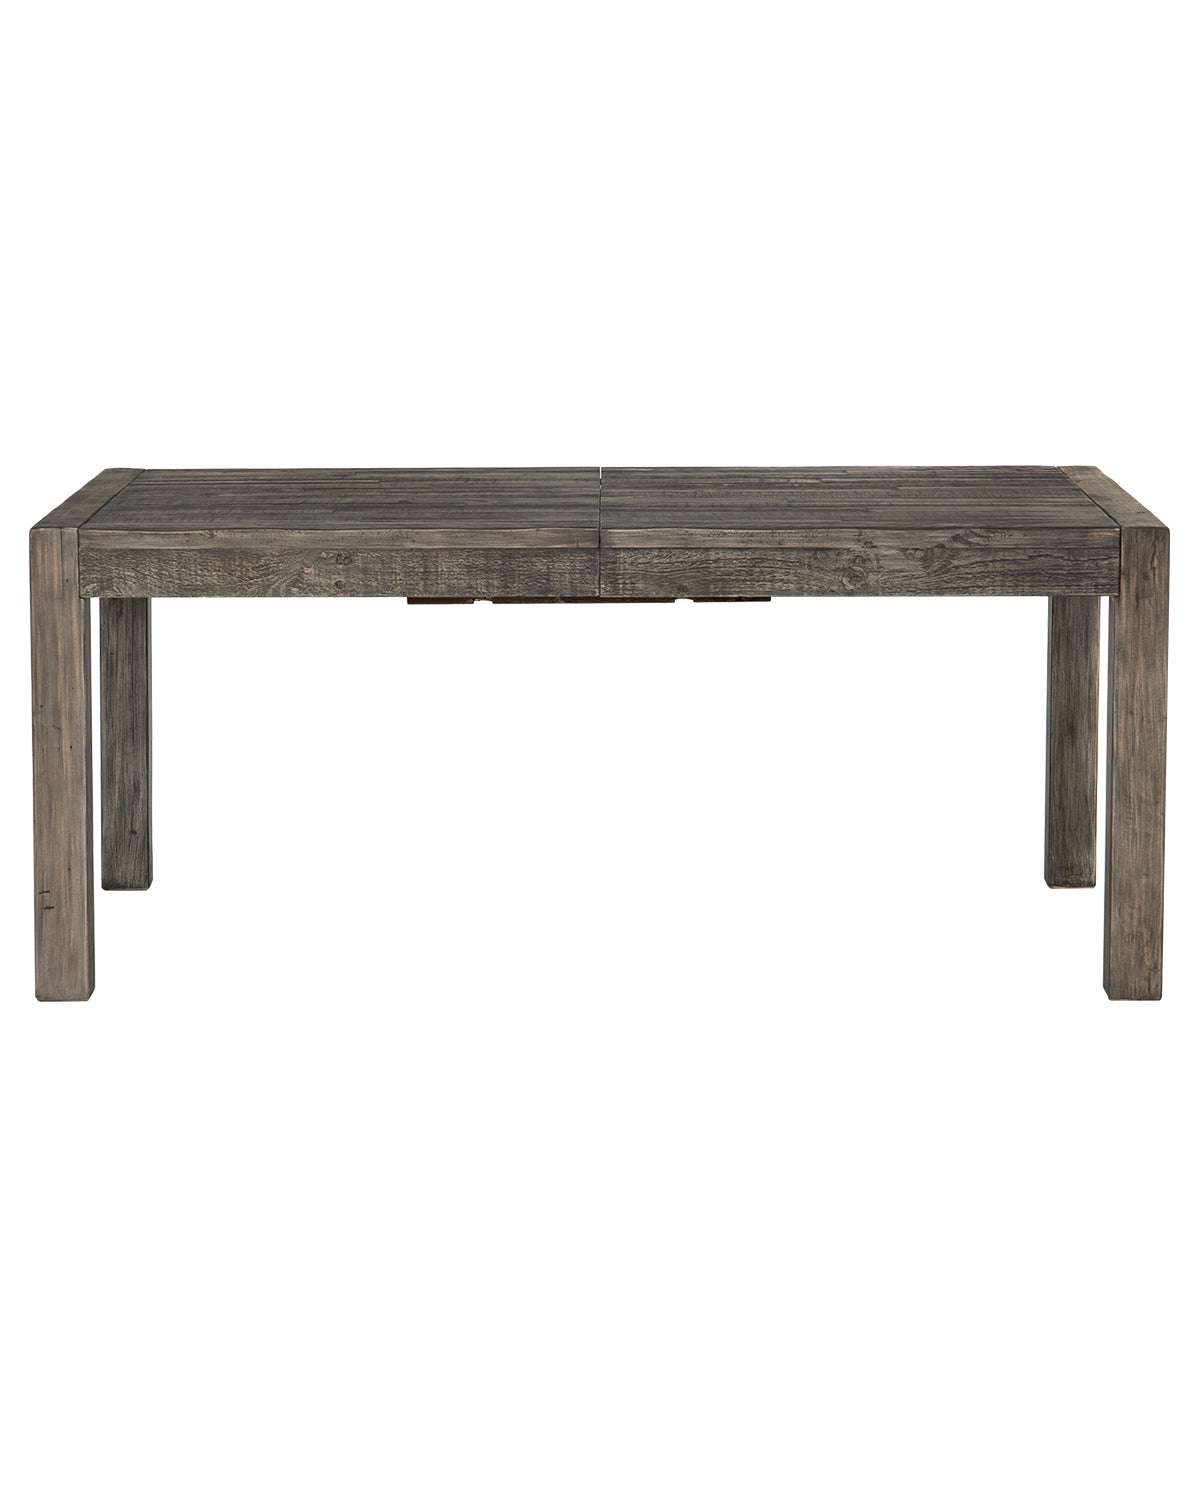 Swell Hayden Extending Dining Table Mcgee Co Ibusinesslaw Wood Chair Design Ideas Ibusinesslaworg